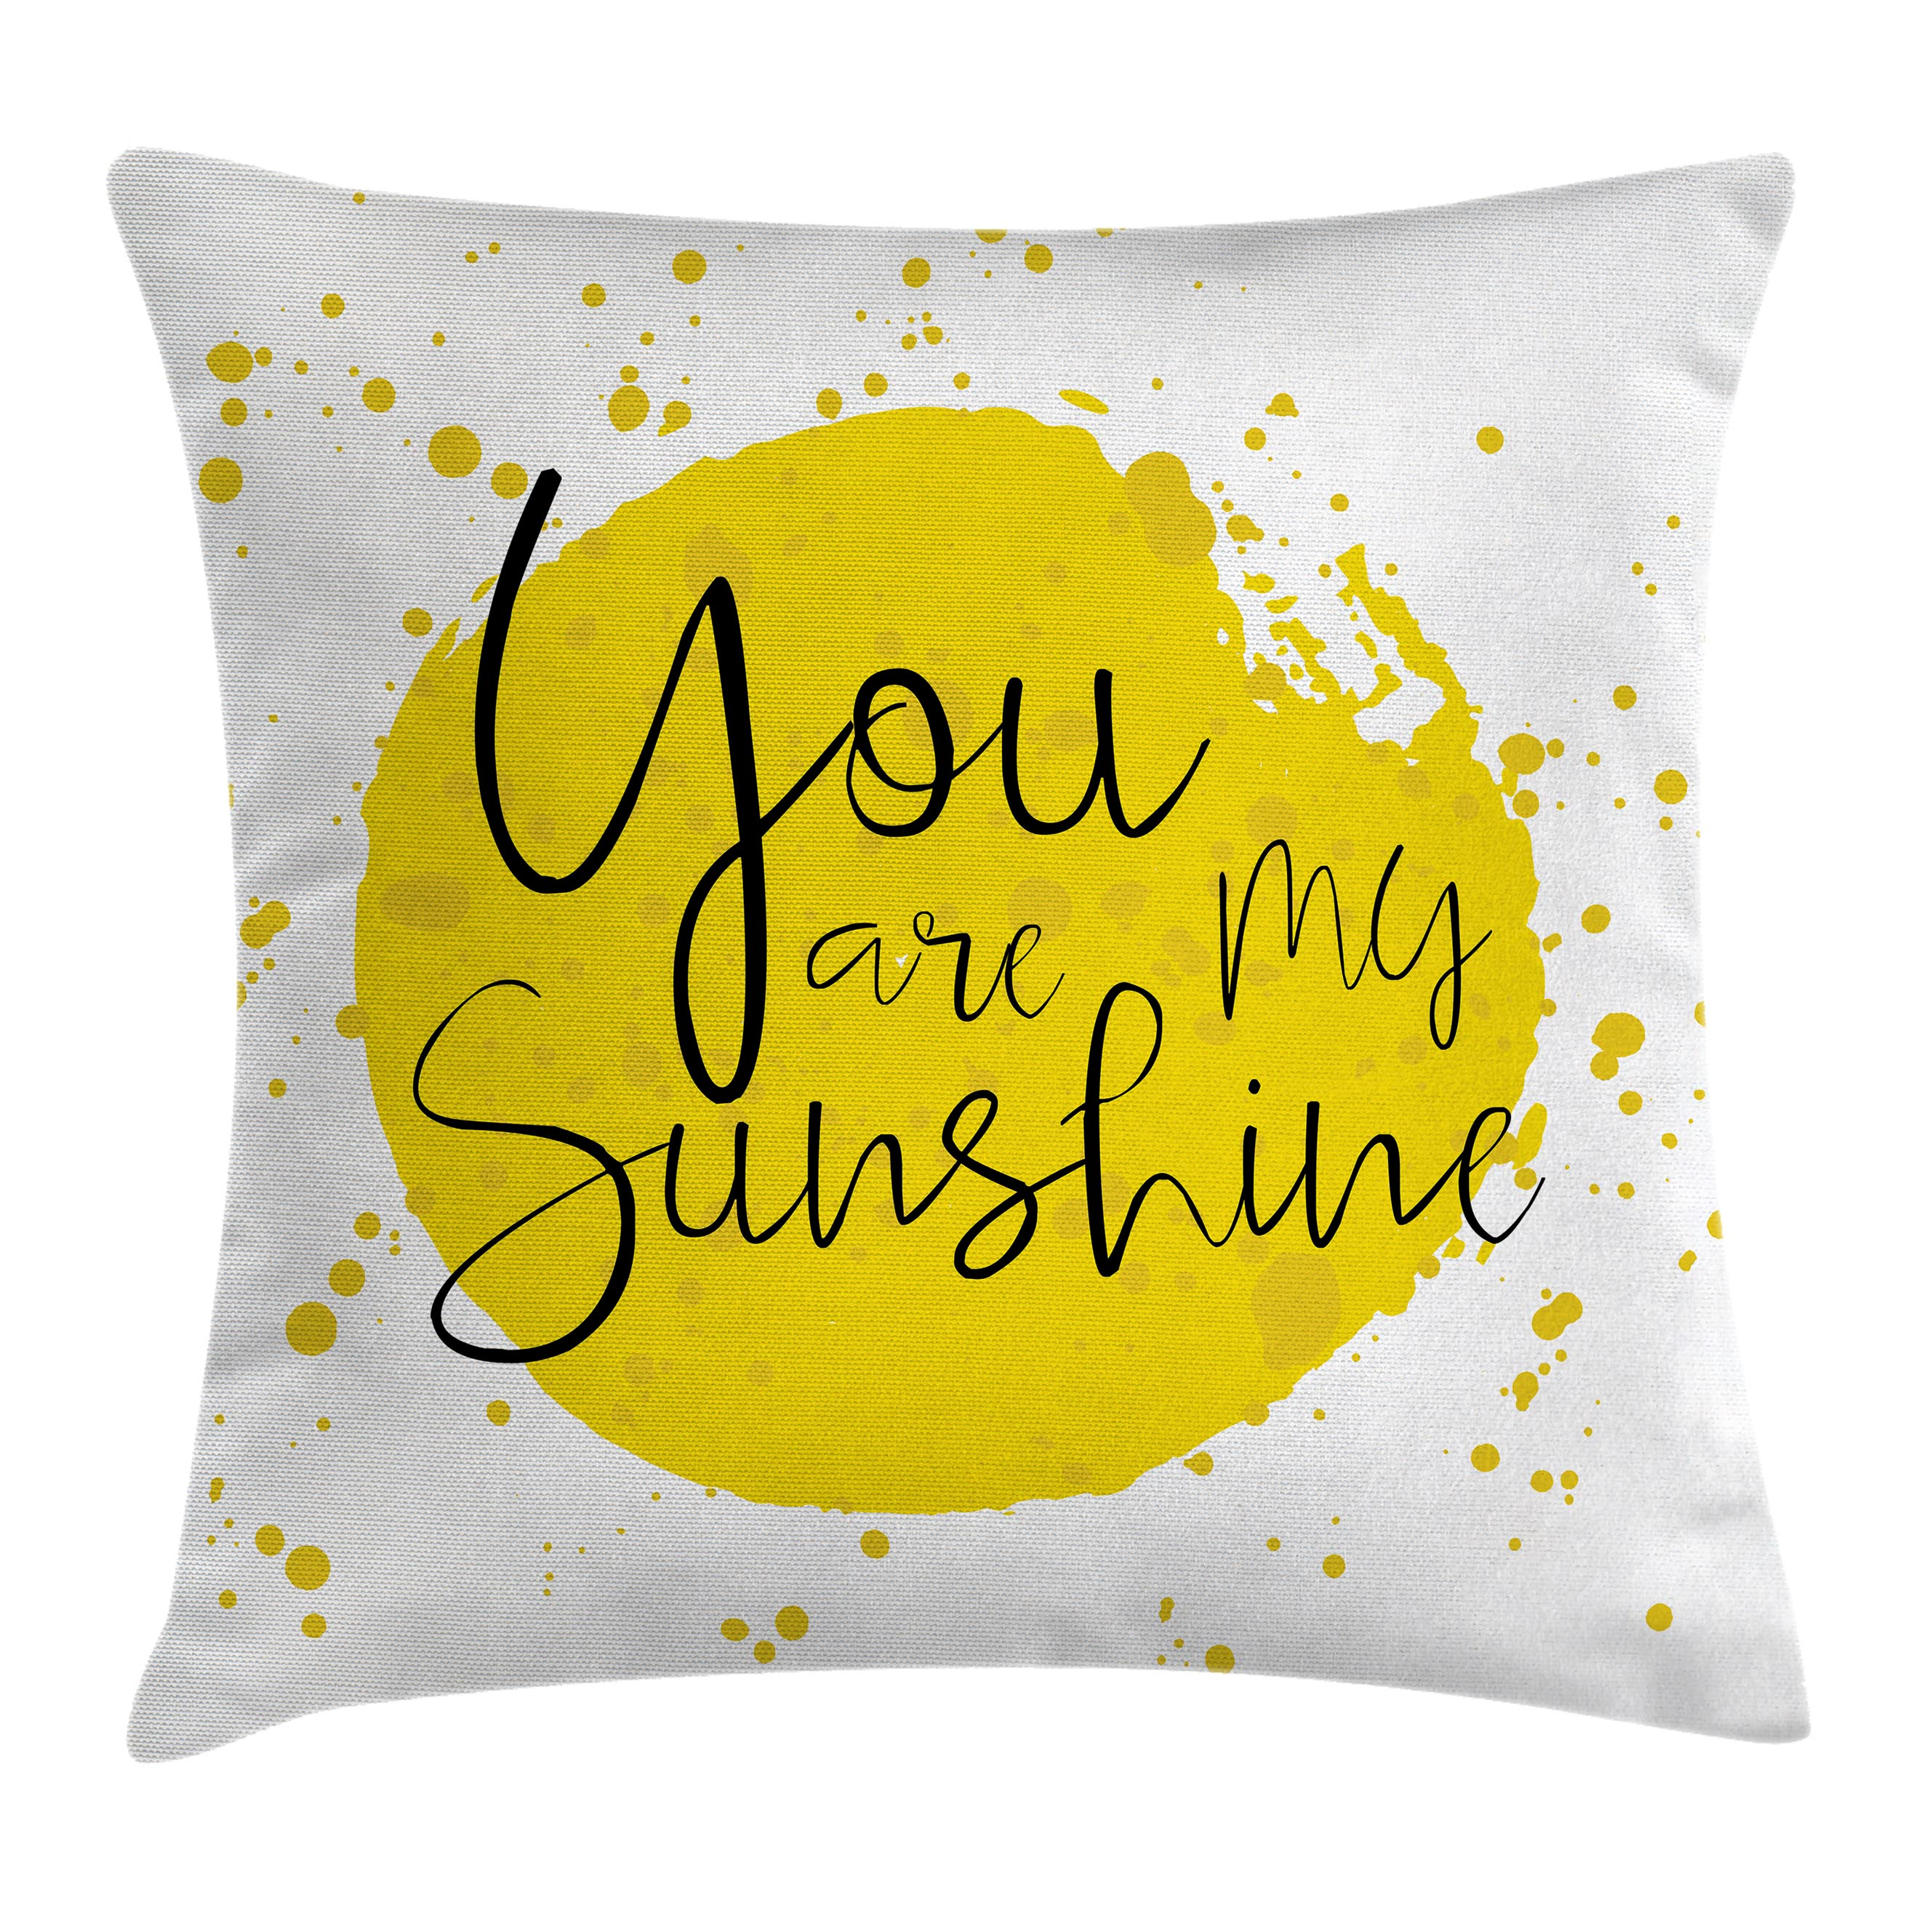 Quotes Decor Throw Pillow Cushion Cover, Circular Color Splash Outspread Brush with Inspirational Quote Valentines Concept, Decorative Square Accent Pillow Case, 18 X 18 Inches, Yellow, by Ambesonne